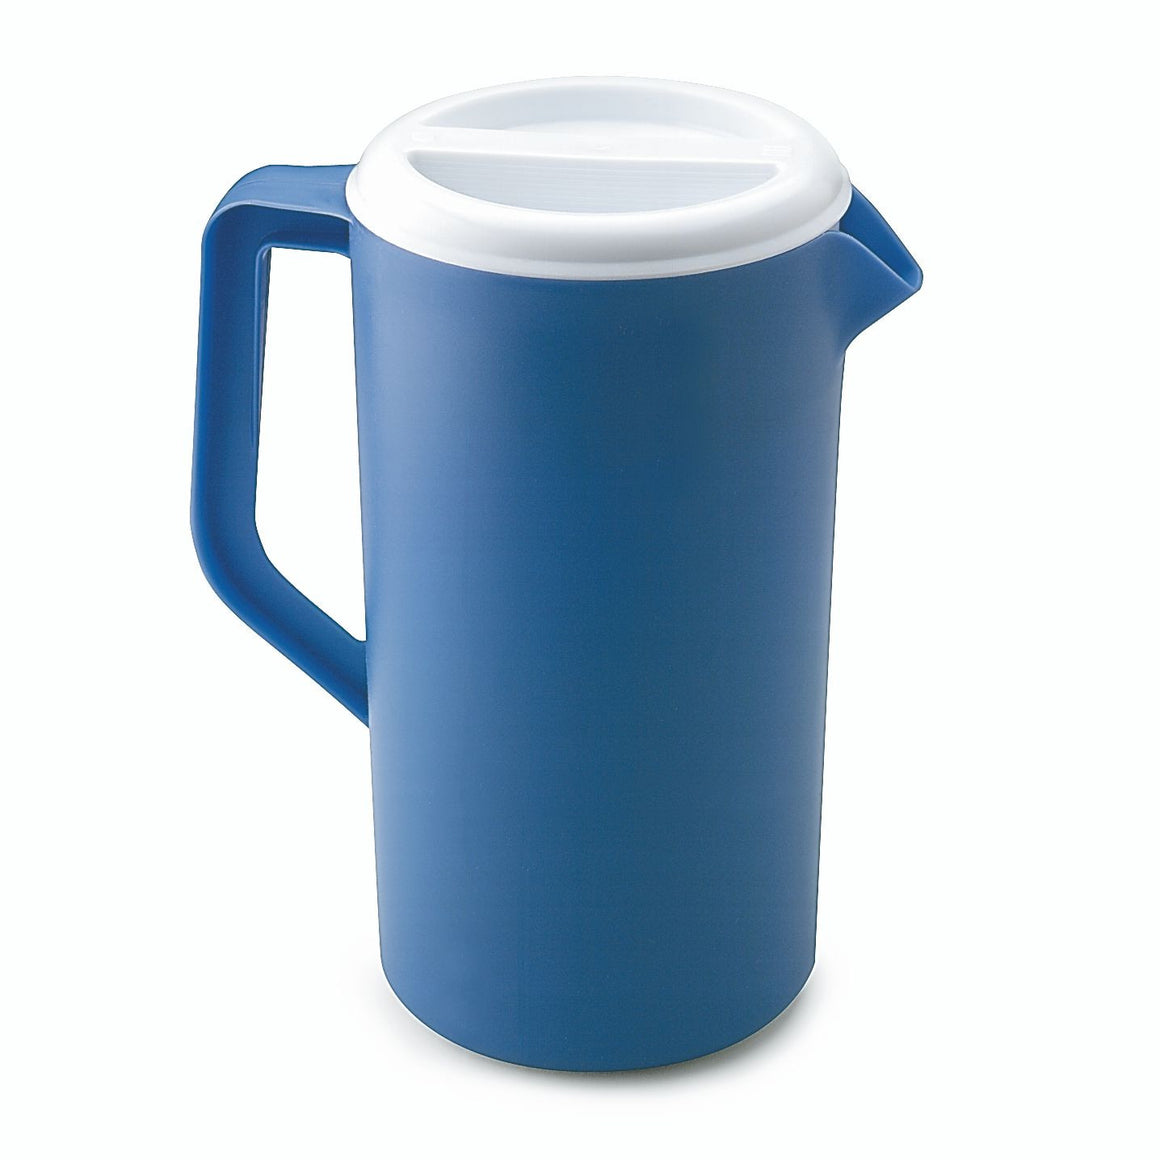 PITCHER 2.1L PERIWINKLE